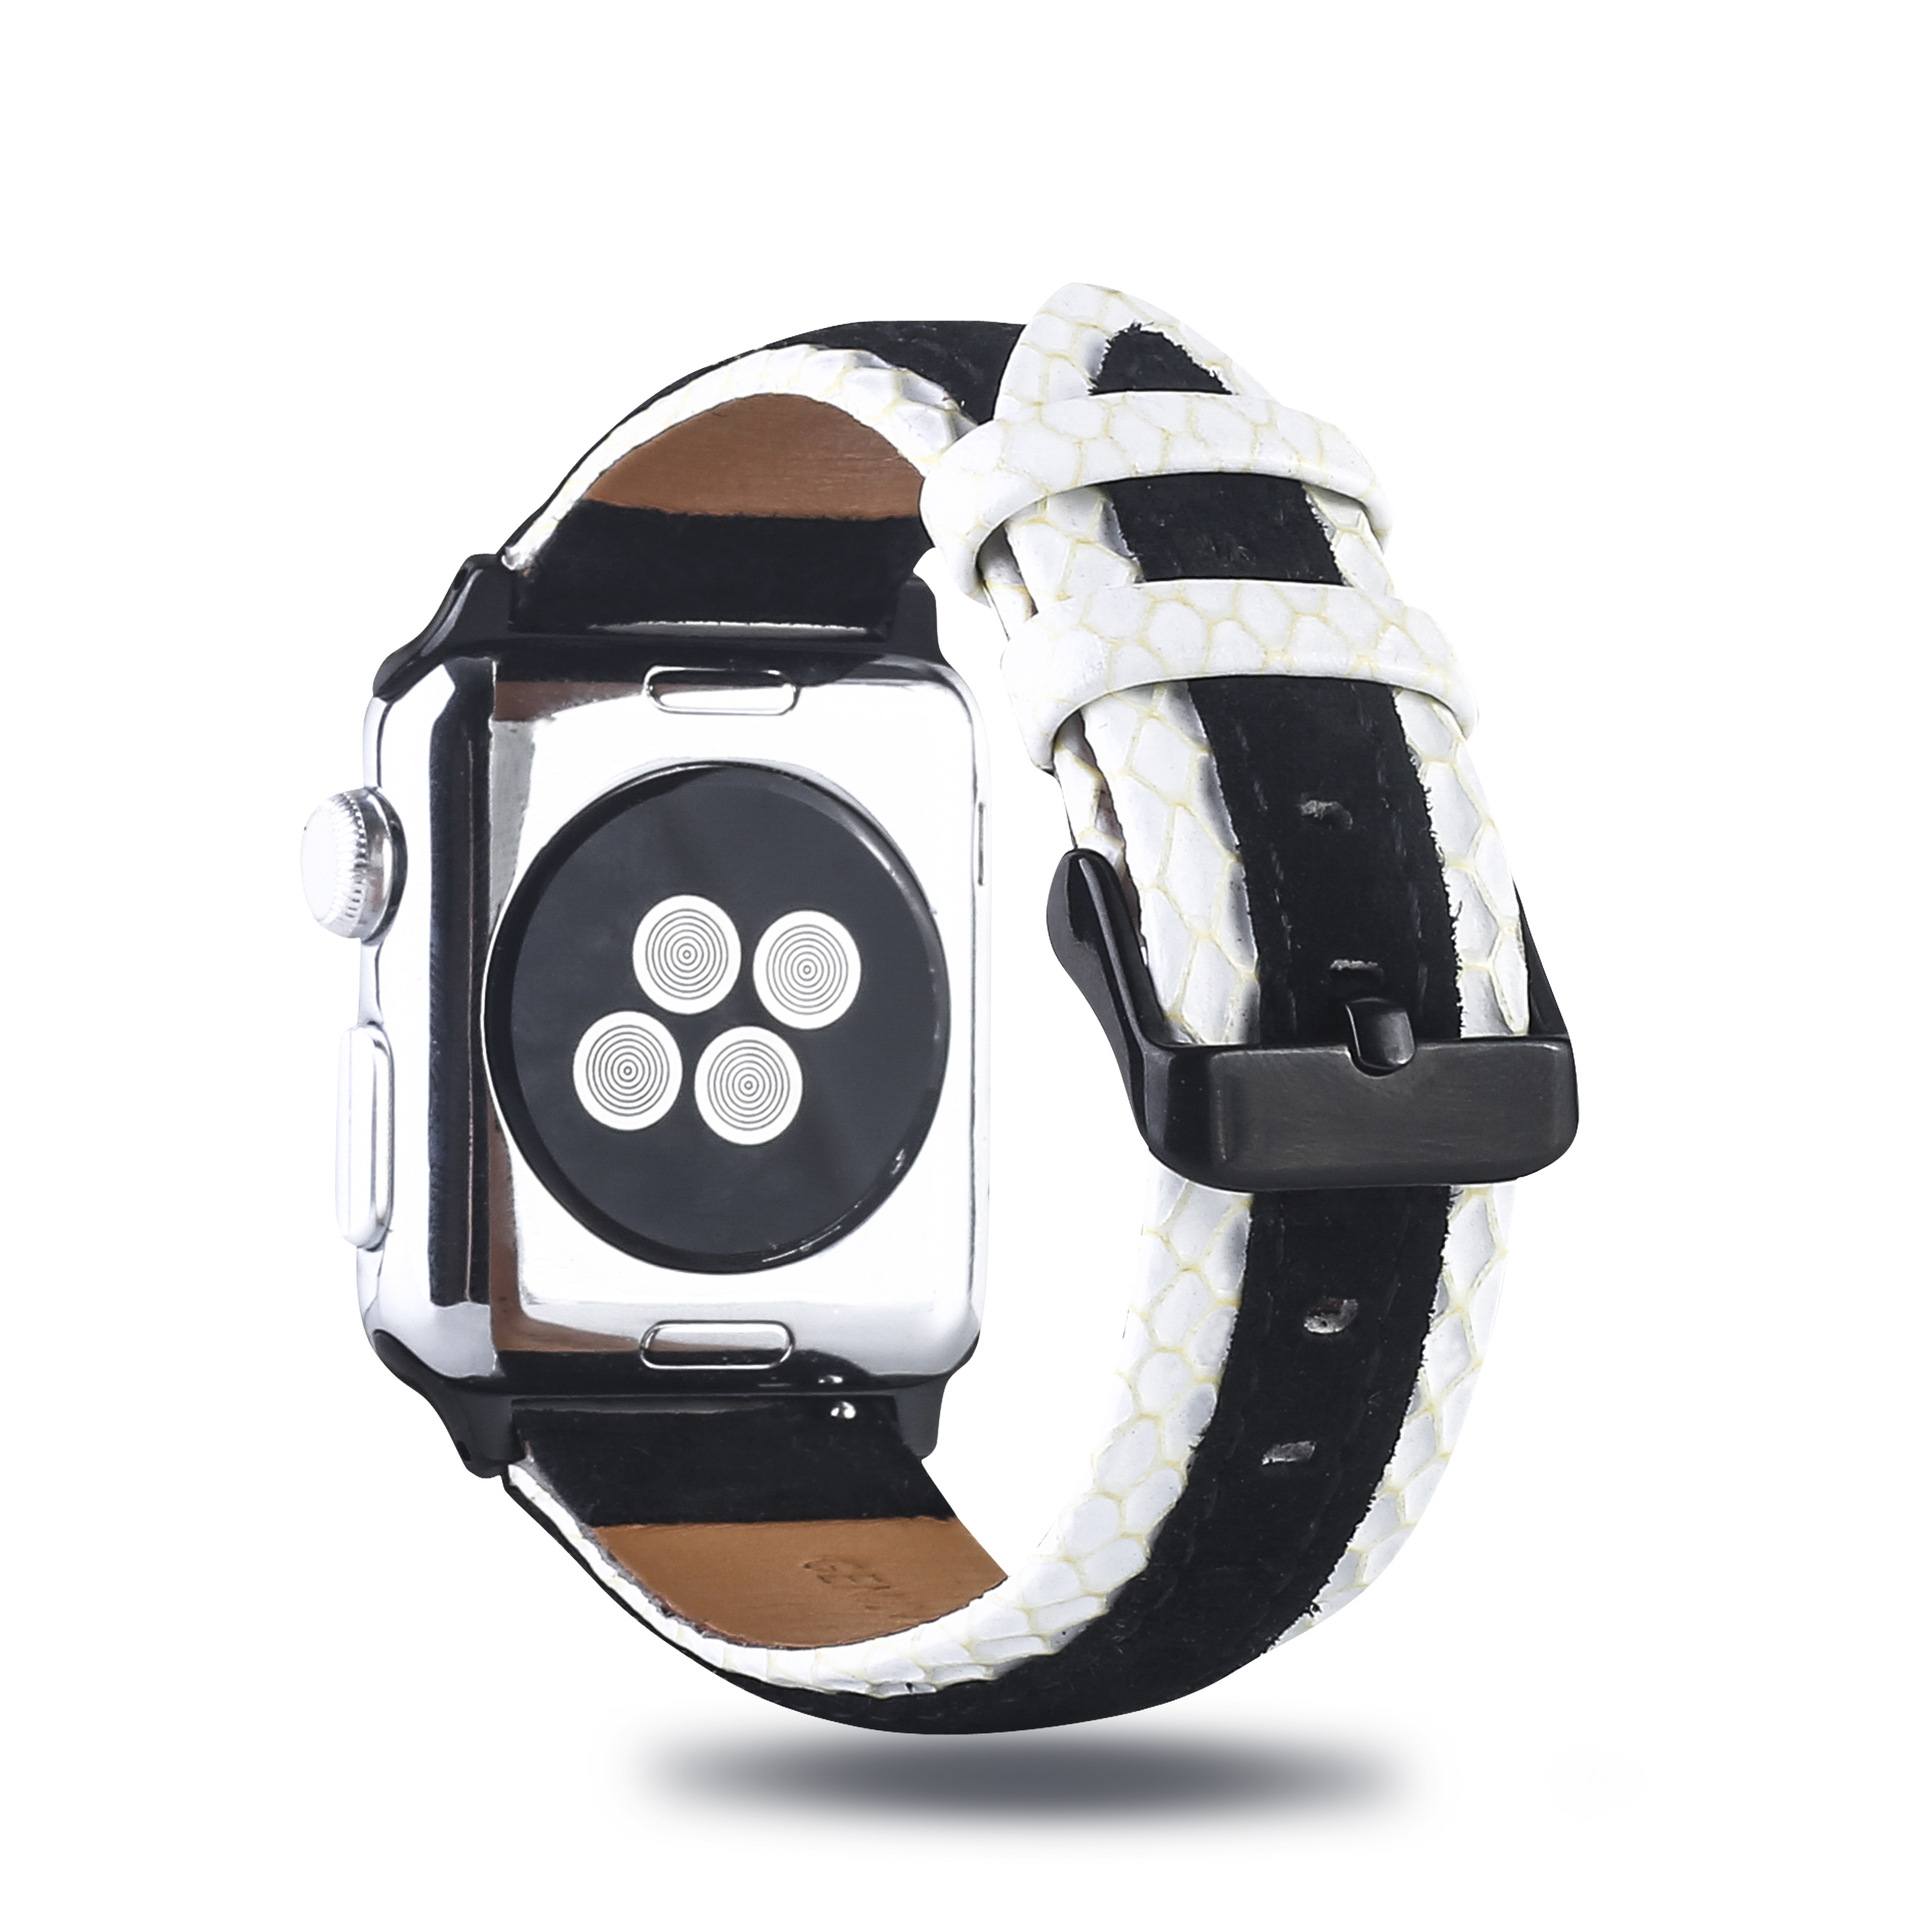 High-End Apple Leather Watch Strap Applicable AppleWatch Cowhide Double Color Watch Strap IWatch Mixed Colors Replacement Wrist